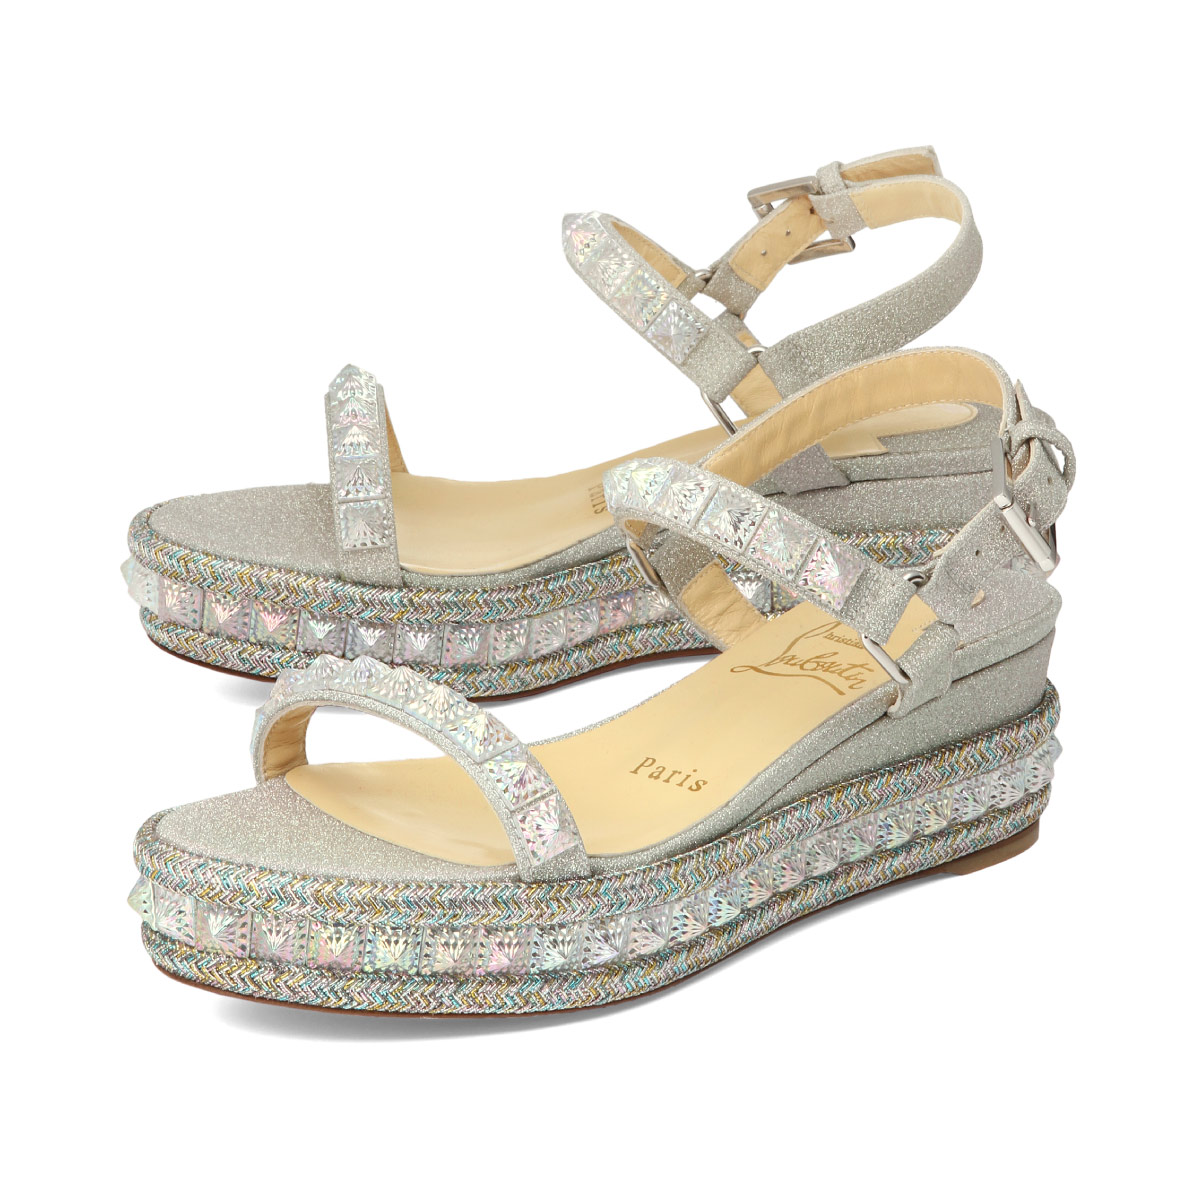 big sale ebef8 a556c Sandals PYRADIAMS ピラディアムズ VERSION AB silver with クリスチャンルブタン Christian  Louboutin shoes Lady's 1191420 W081 strap